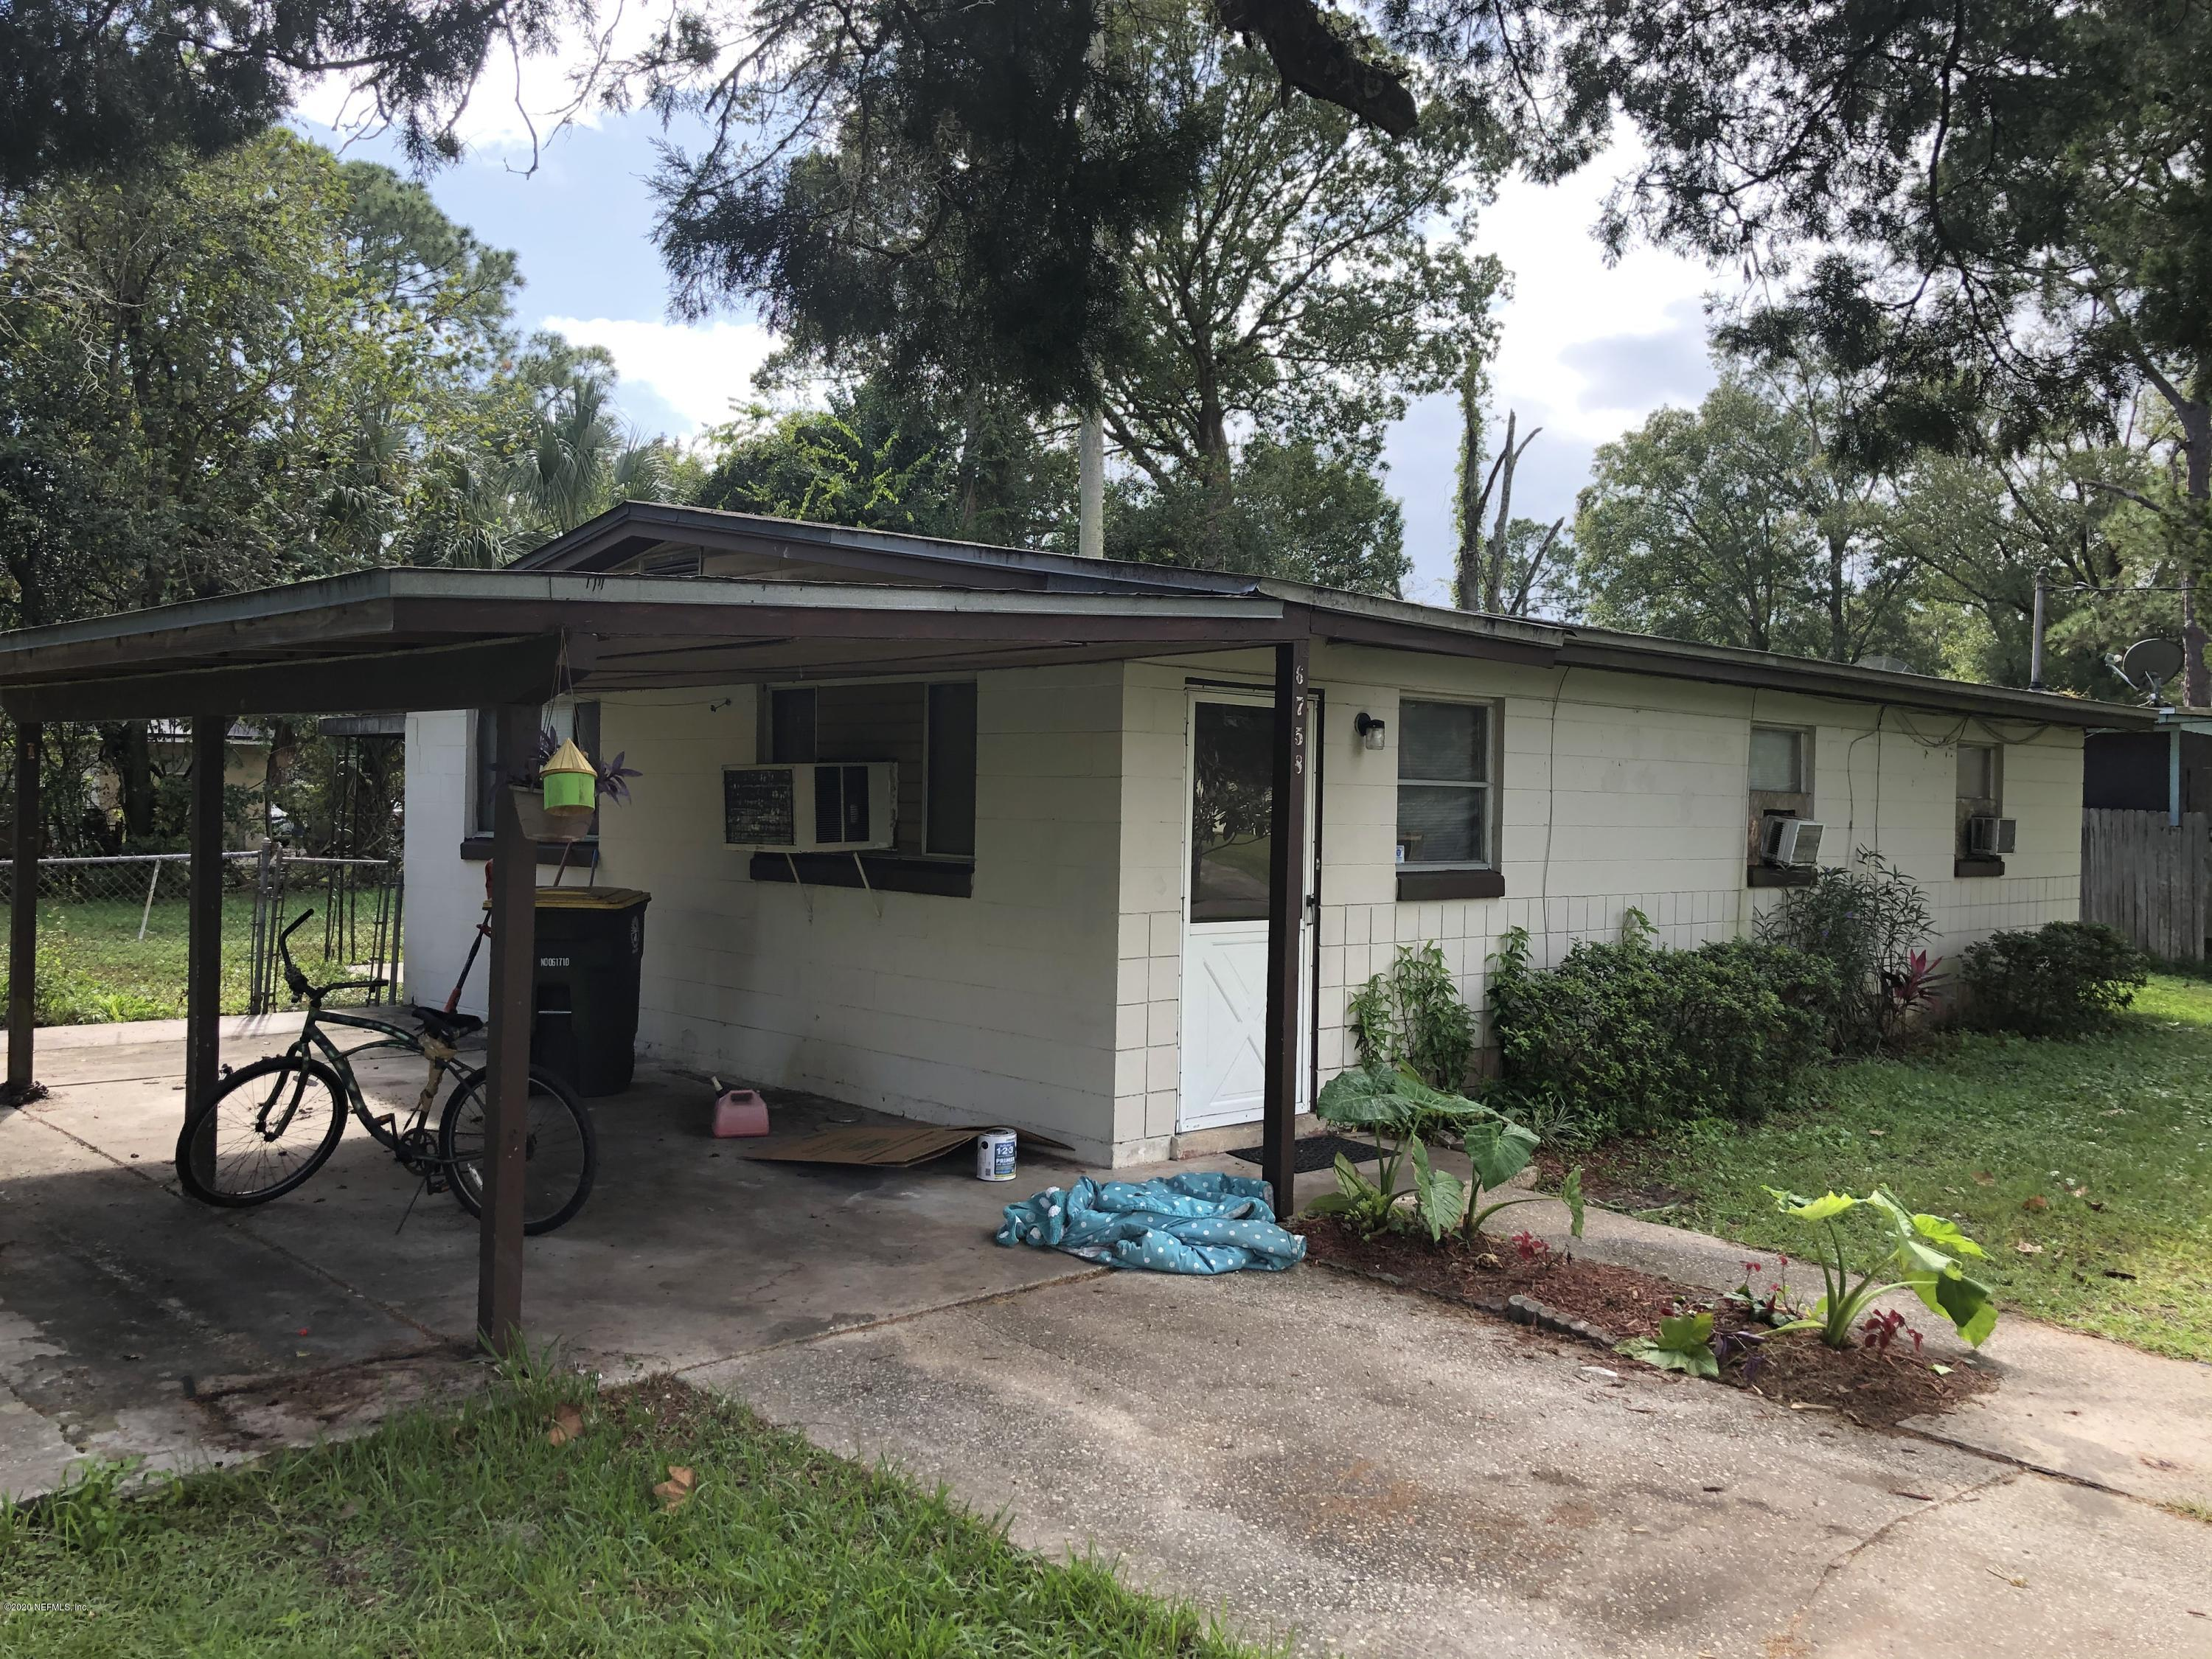 6758 MISS MUFFET, JACKSONVILLE, FLORIDA 32210, 3 Bedrooms Bedrooms, ,1 BathroomBathrooms,Residential,For sale,MISS MUFFET,1082067